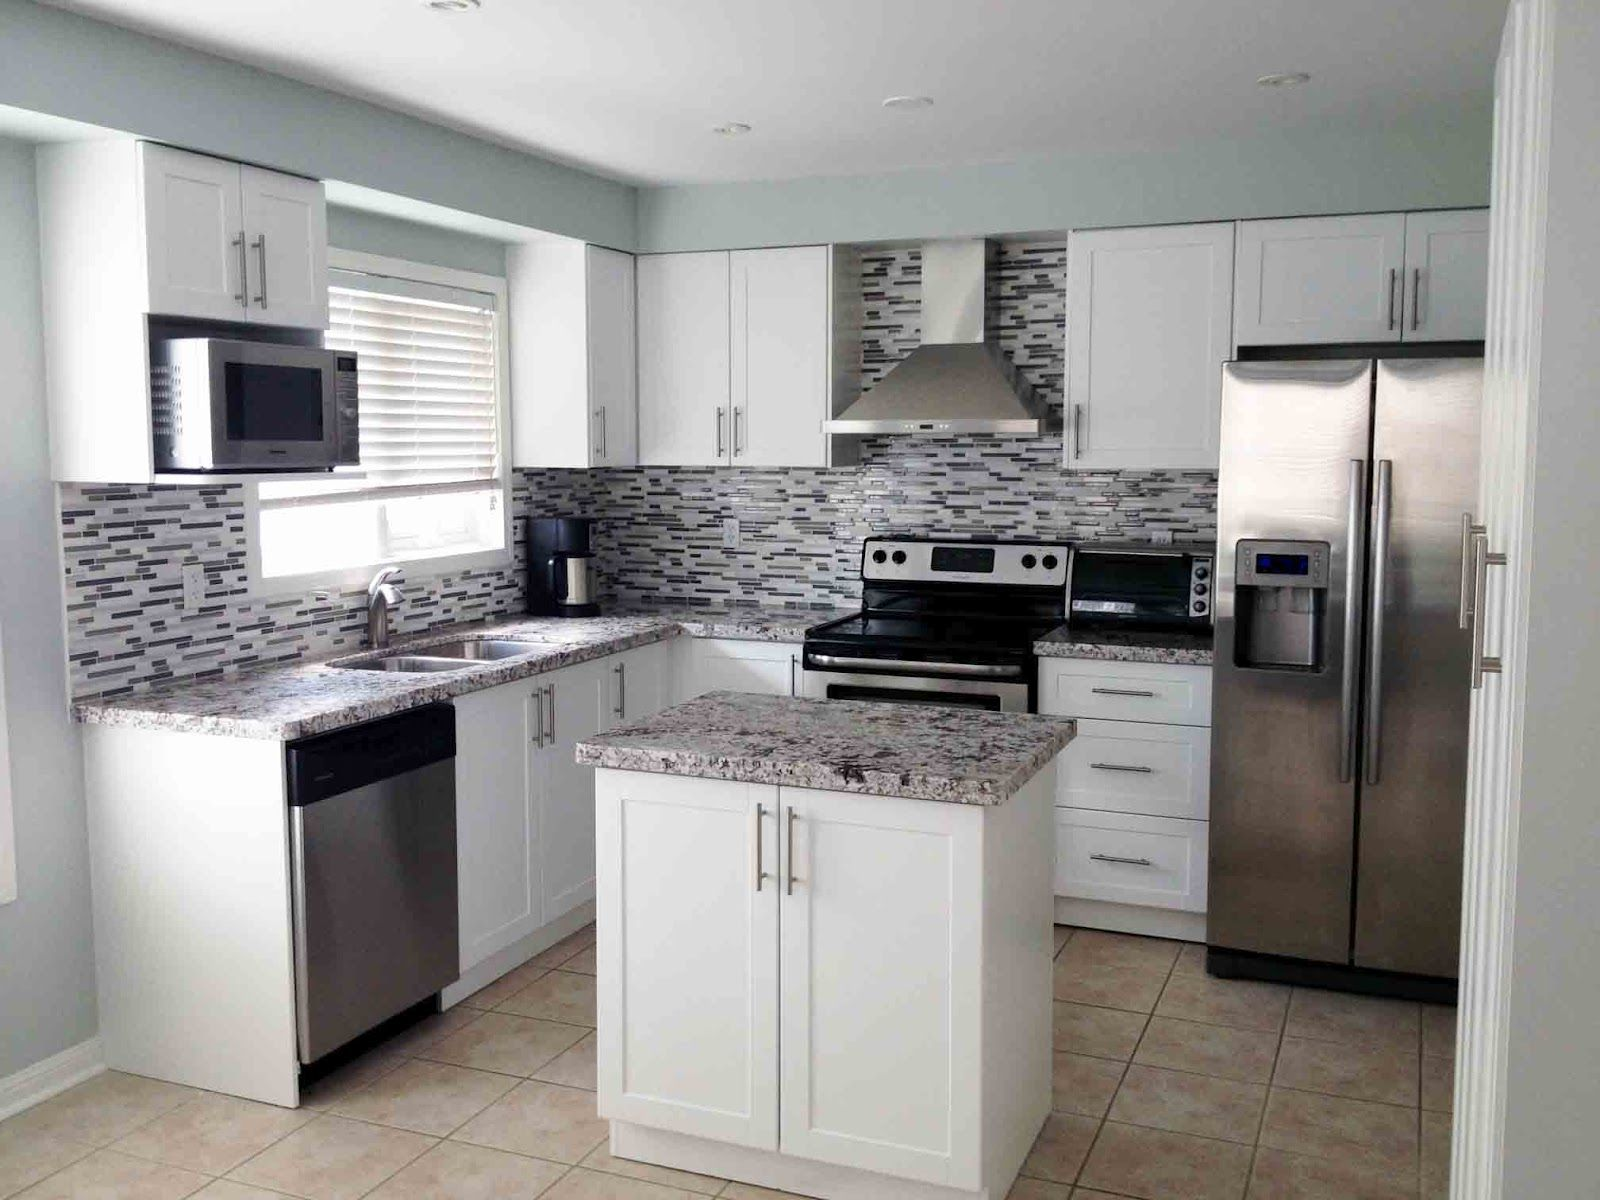 Kitchen Remodel Banquet Kitchen Cabinets White Shaker Style - Shaker style furniture for your kitchen cabinets